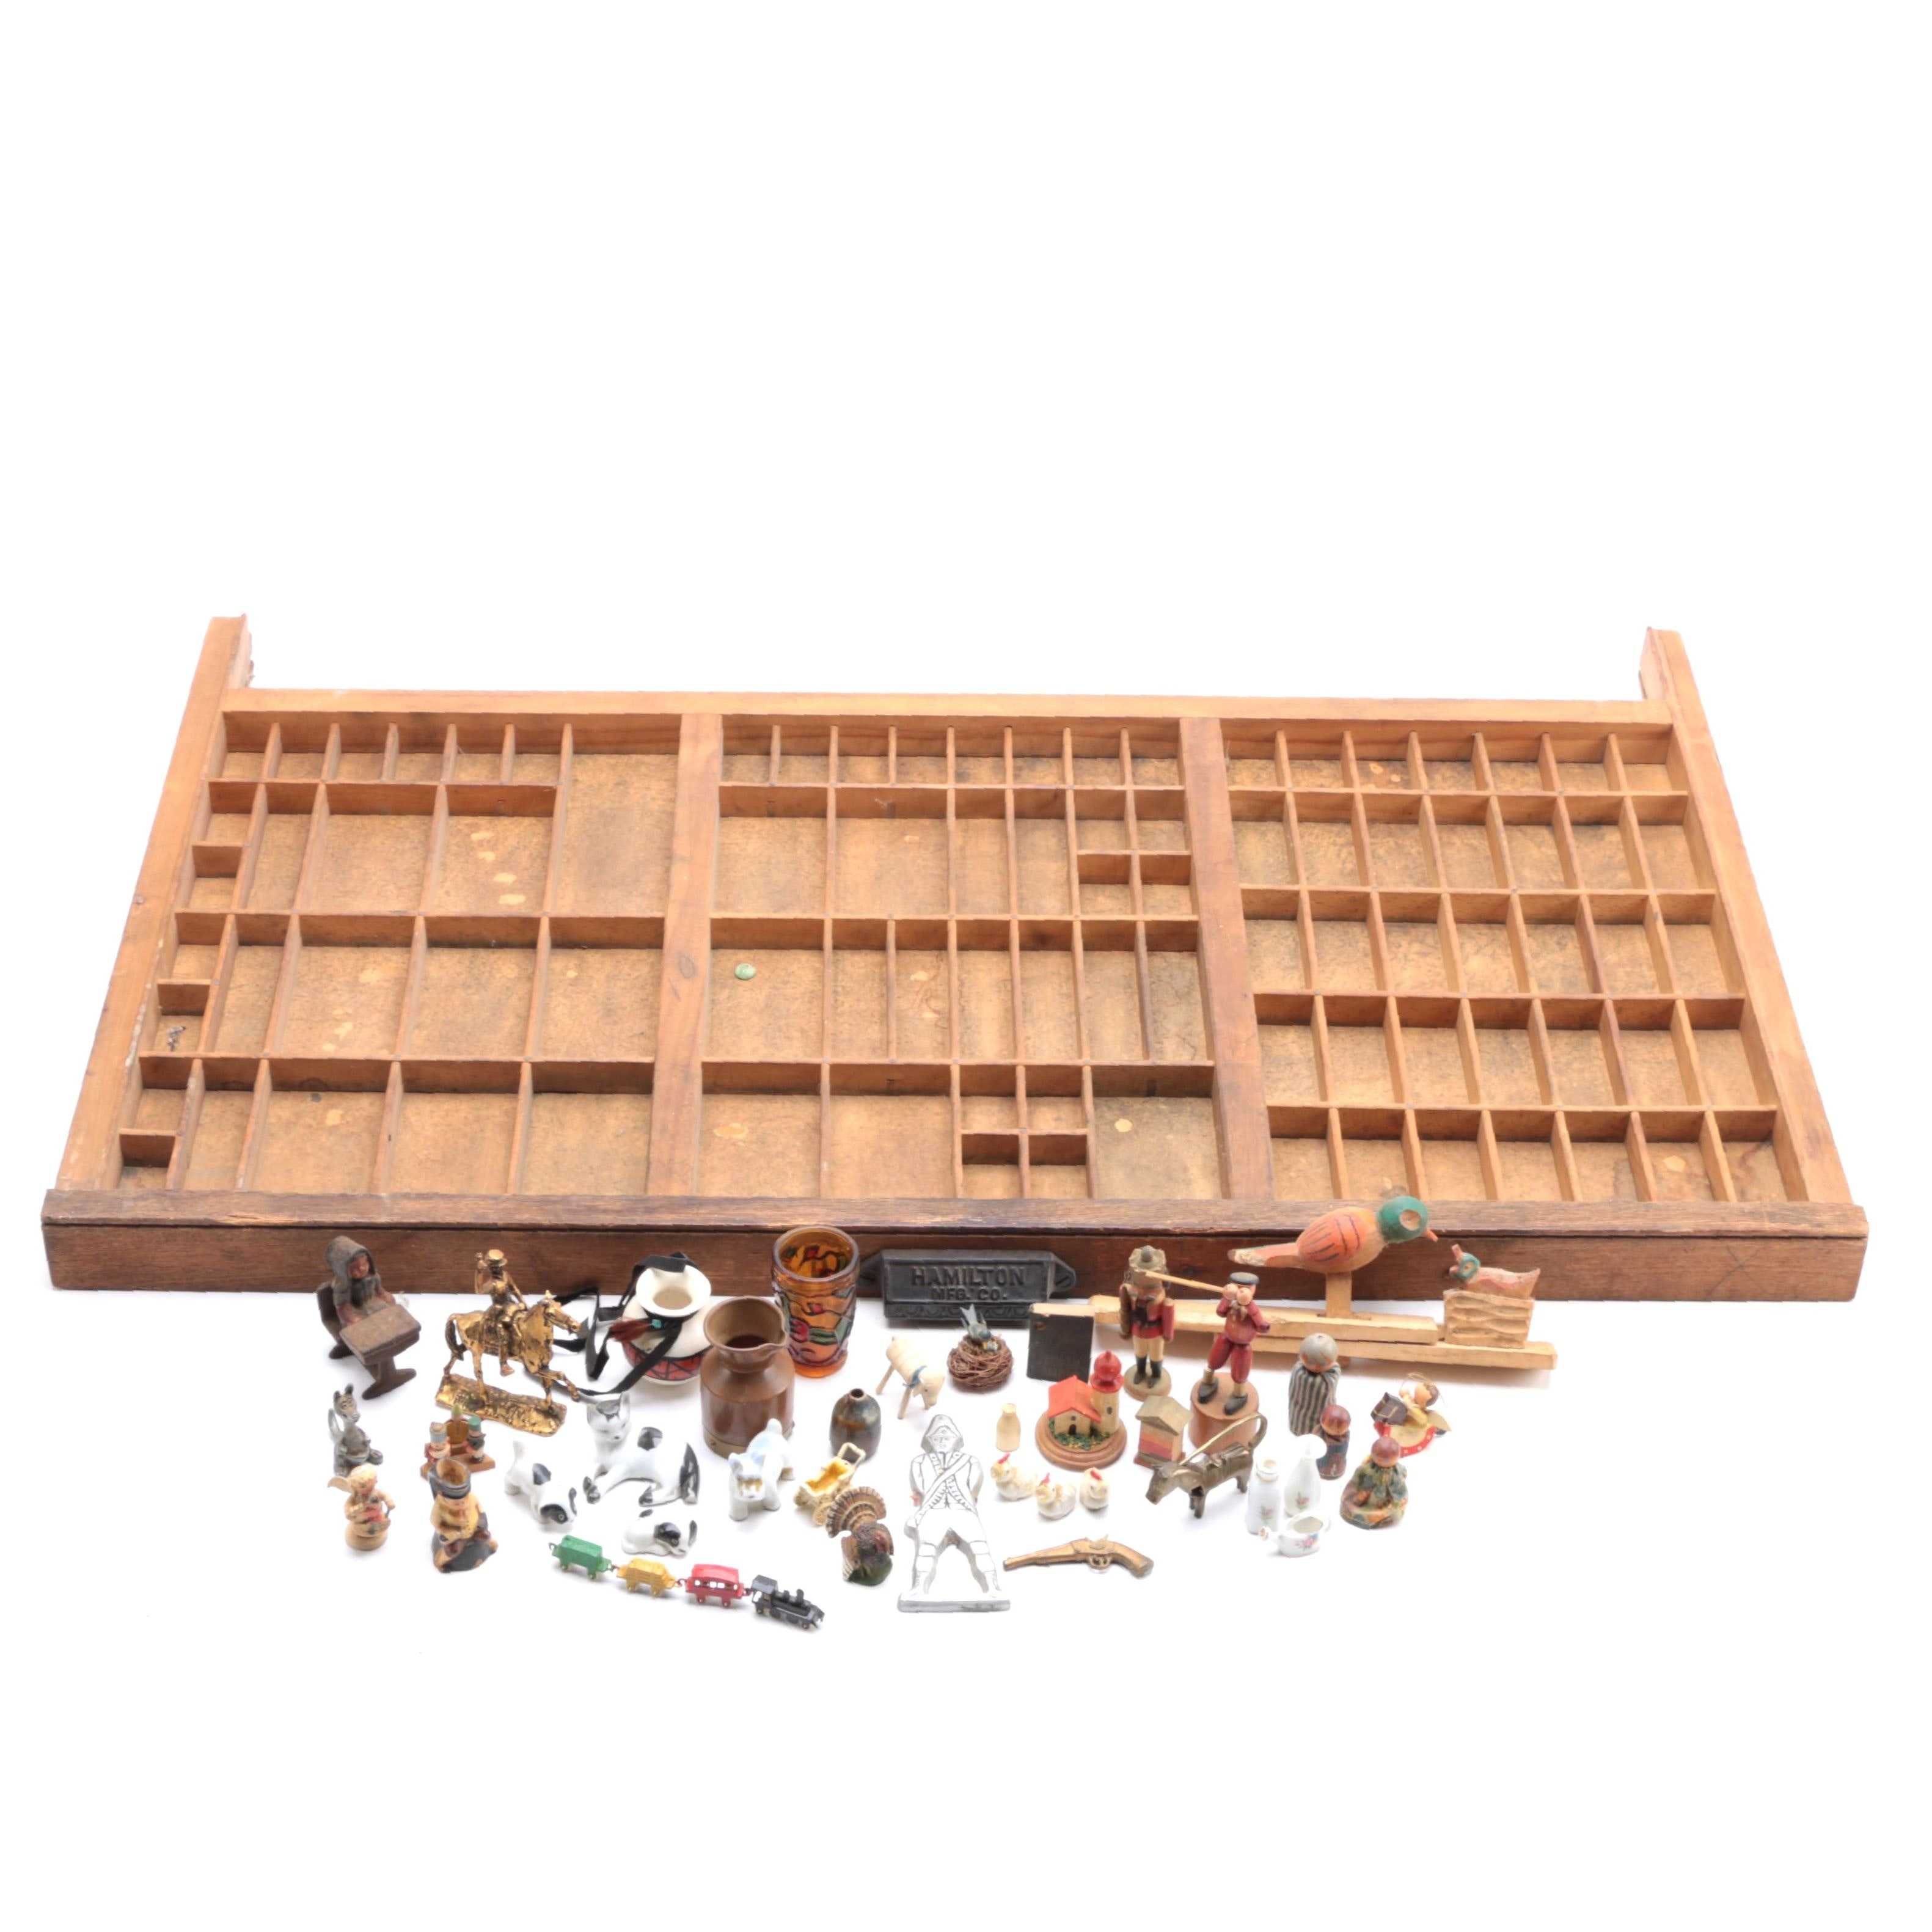 Hamilton Wooden Printer's Tray with Figurines and Other Decor